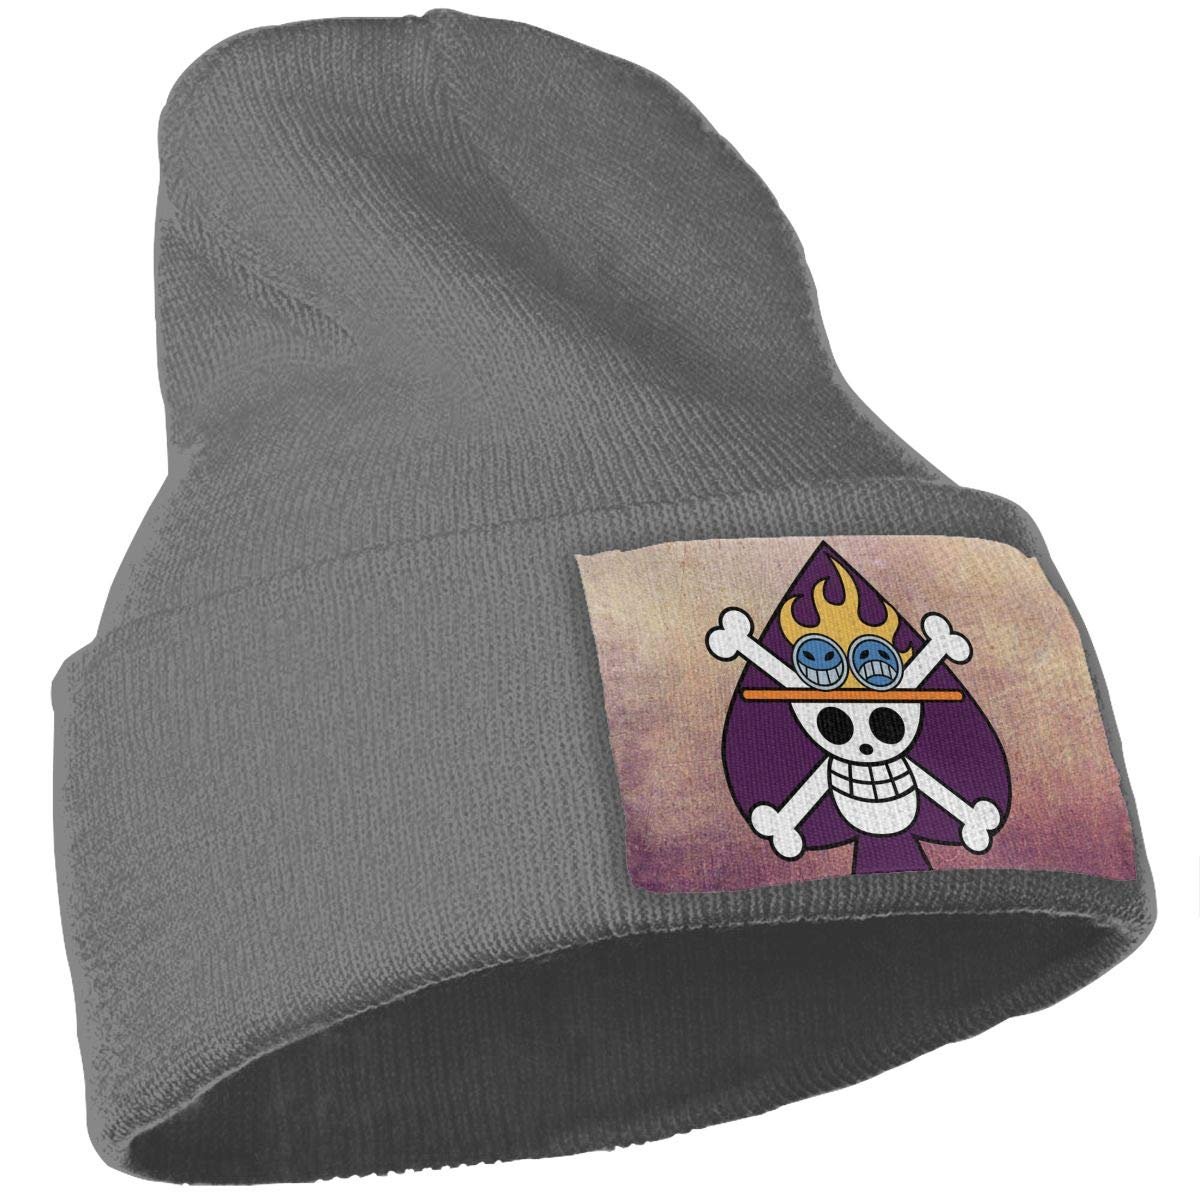 JimHappy Portgas Monkey Luffy Hat for Men and Women Winter Warm Hats Knit Slouchy Thick Skull Cap